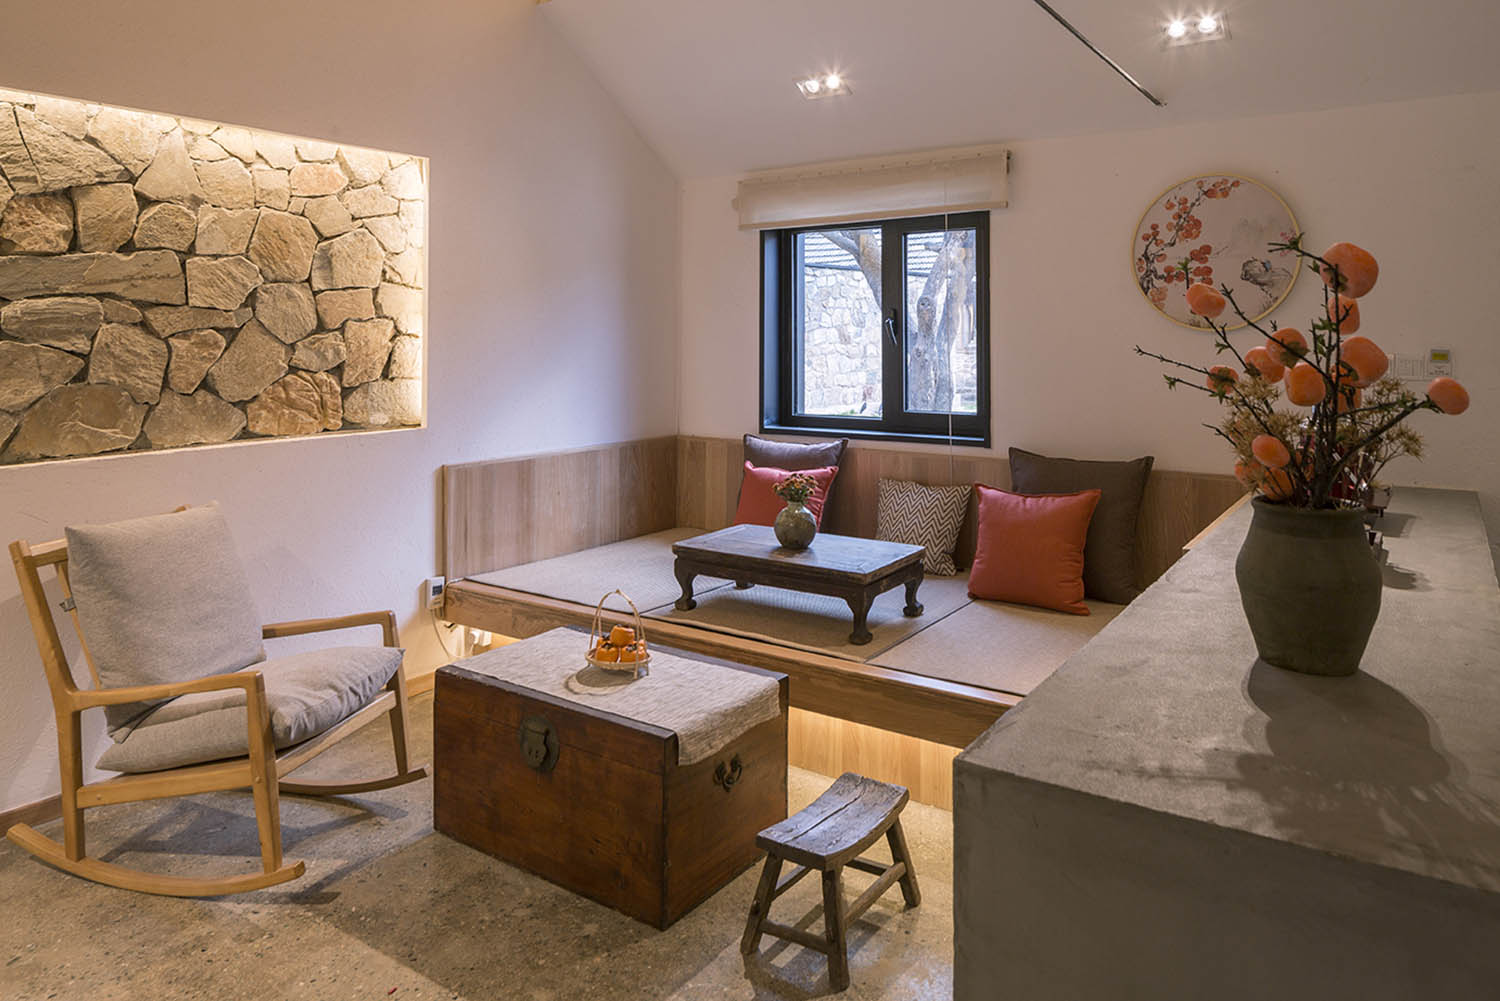 (Persimmon garden) In guest room A, stone walls and old furniture are kept deliberately to convey a sense of time and  regional information. Jin Weiqi